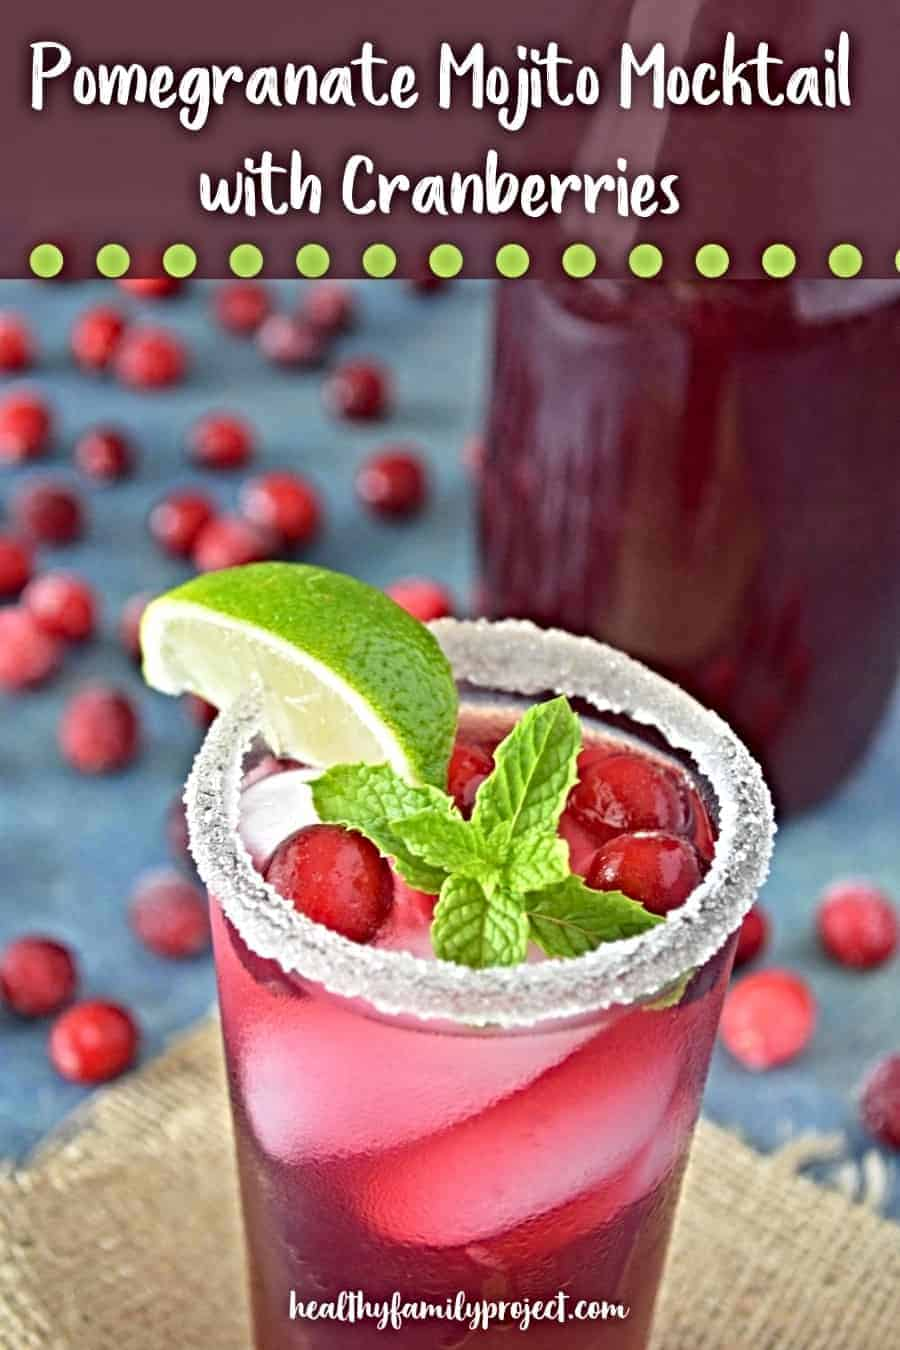 Pomegranate Mojito Mocktail with Cranberries pin